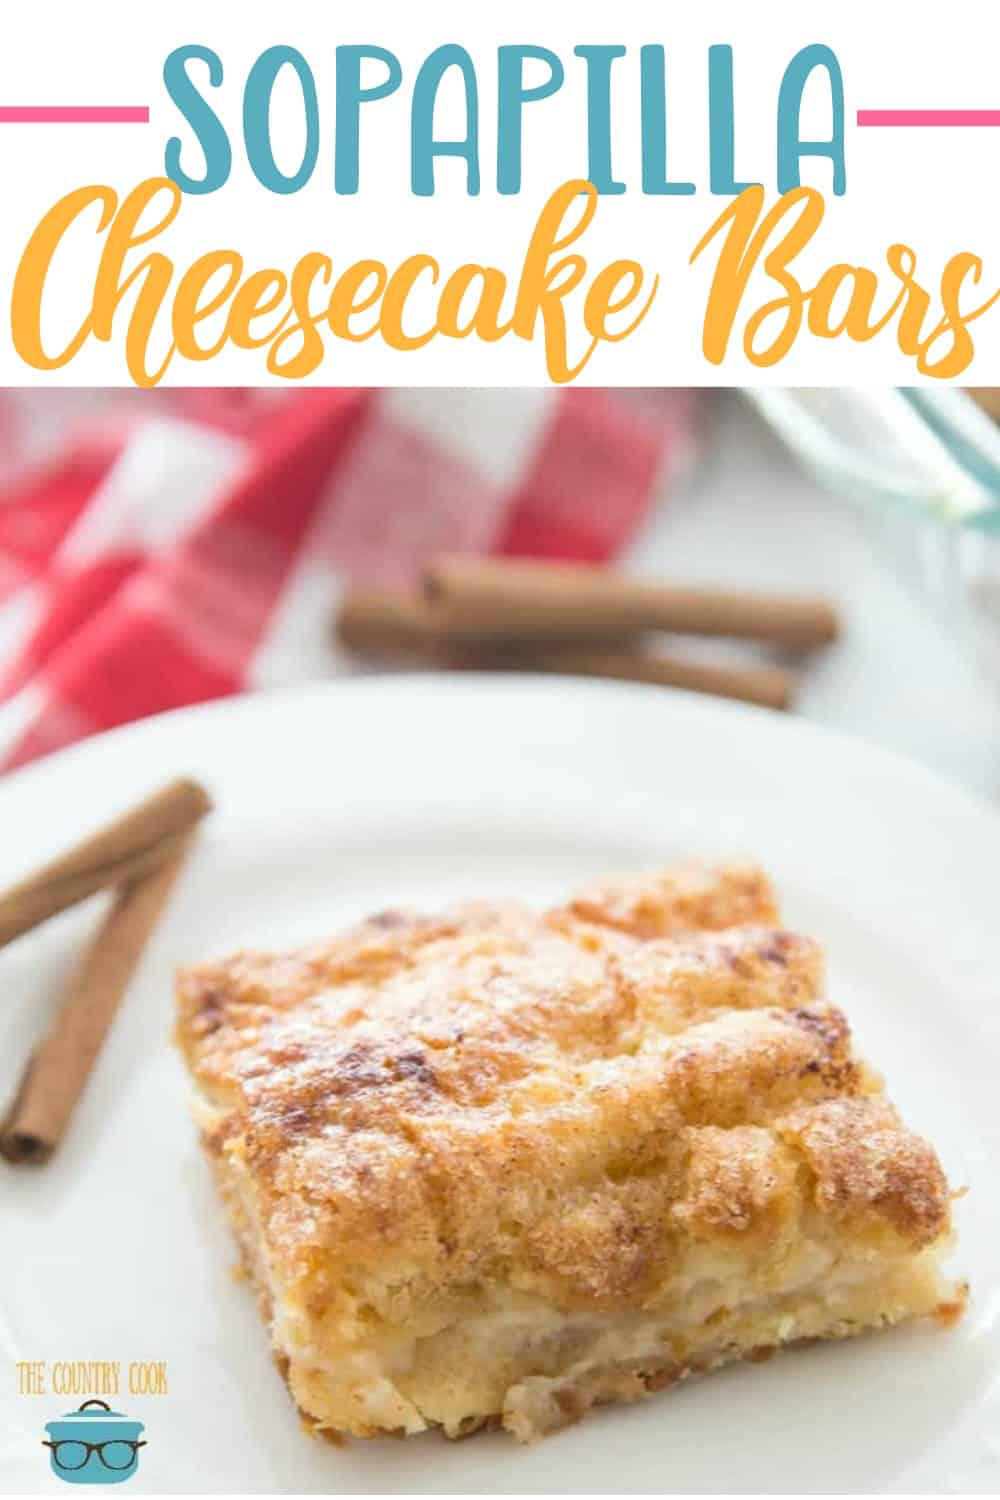 Easy Sopapilla Cheesecake is made with crescent roll dough, cream cheese, sugar, cinnamon and melted butter. A deliciously easy dessert! #cheesecakebars #crescentrolls